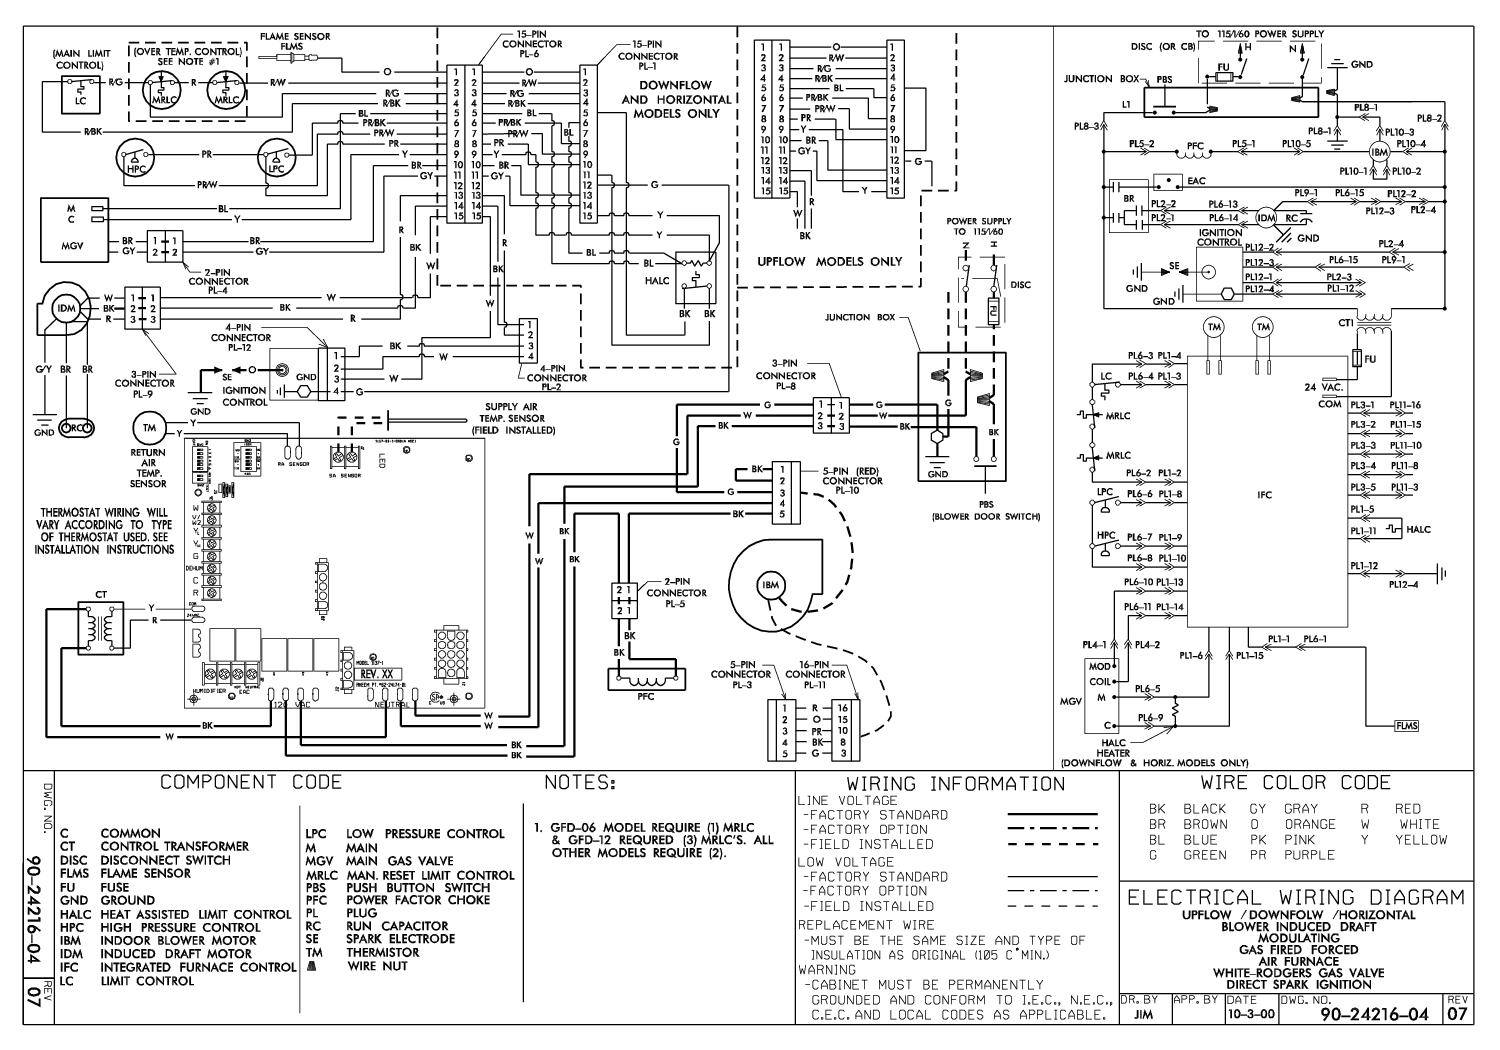 Lennox Furnace Thermostat Wiring Diagram Wiring Diagram